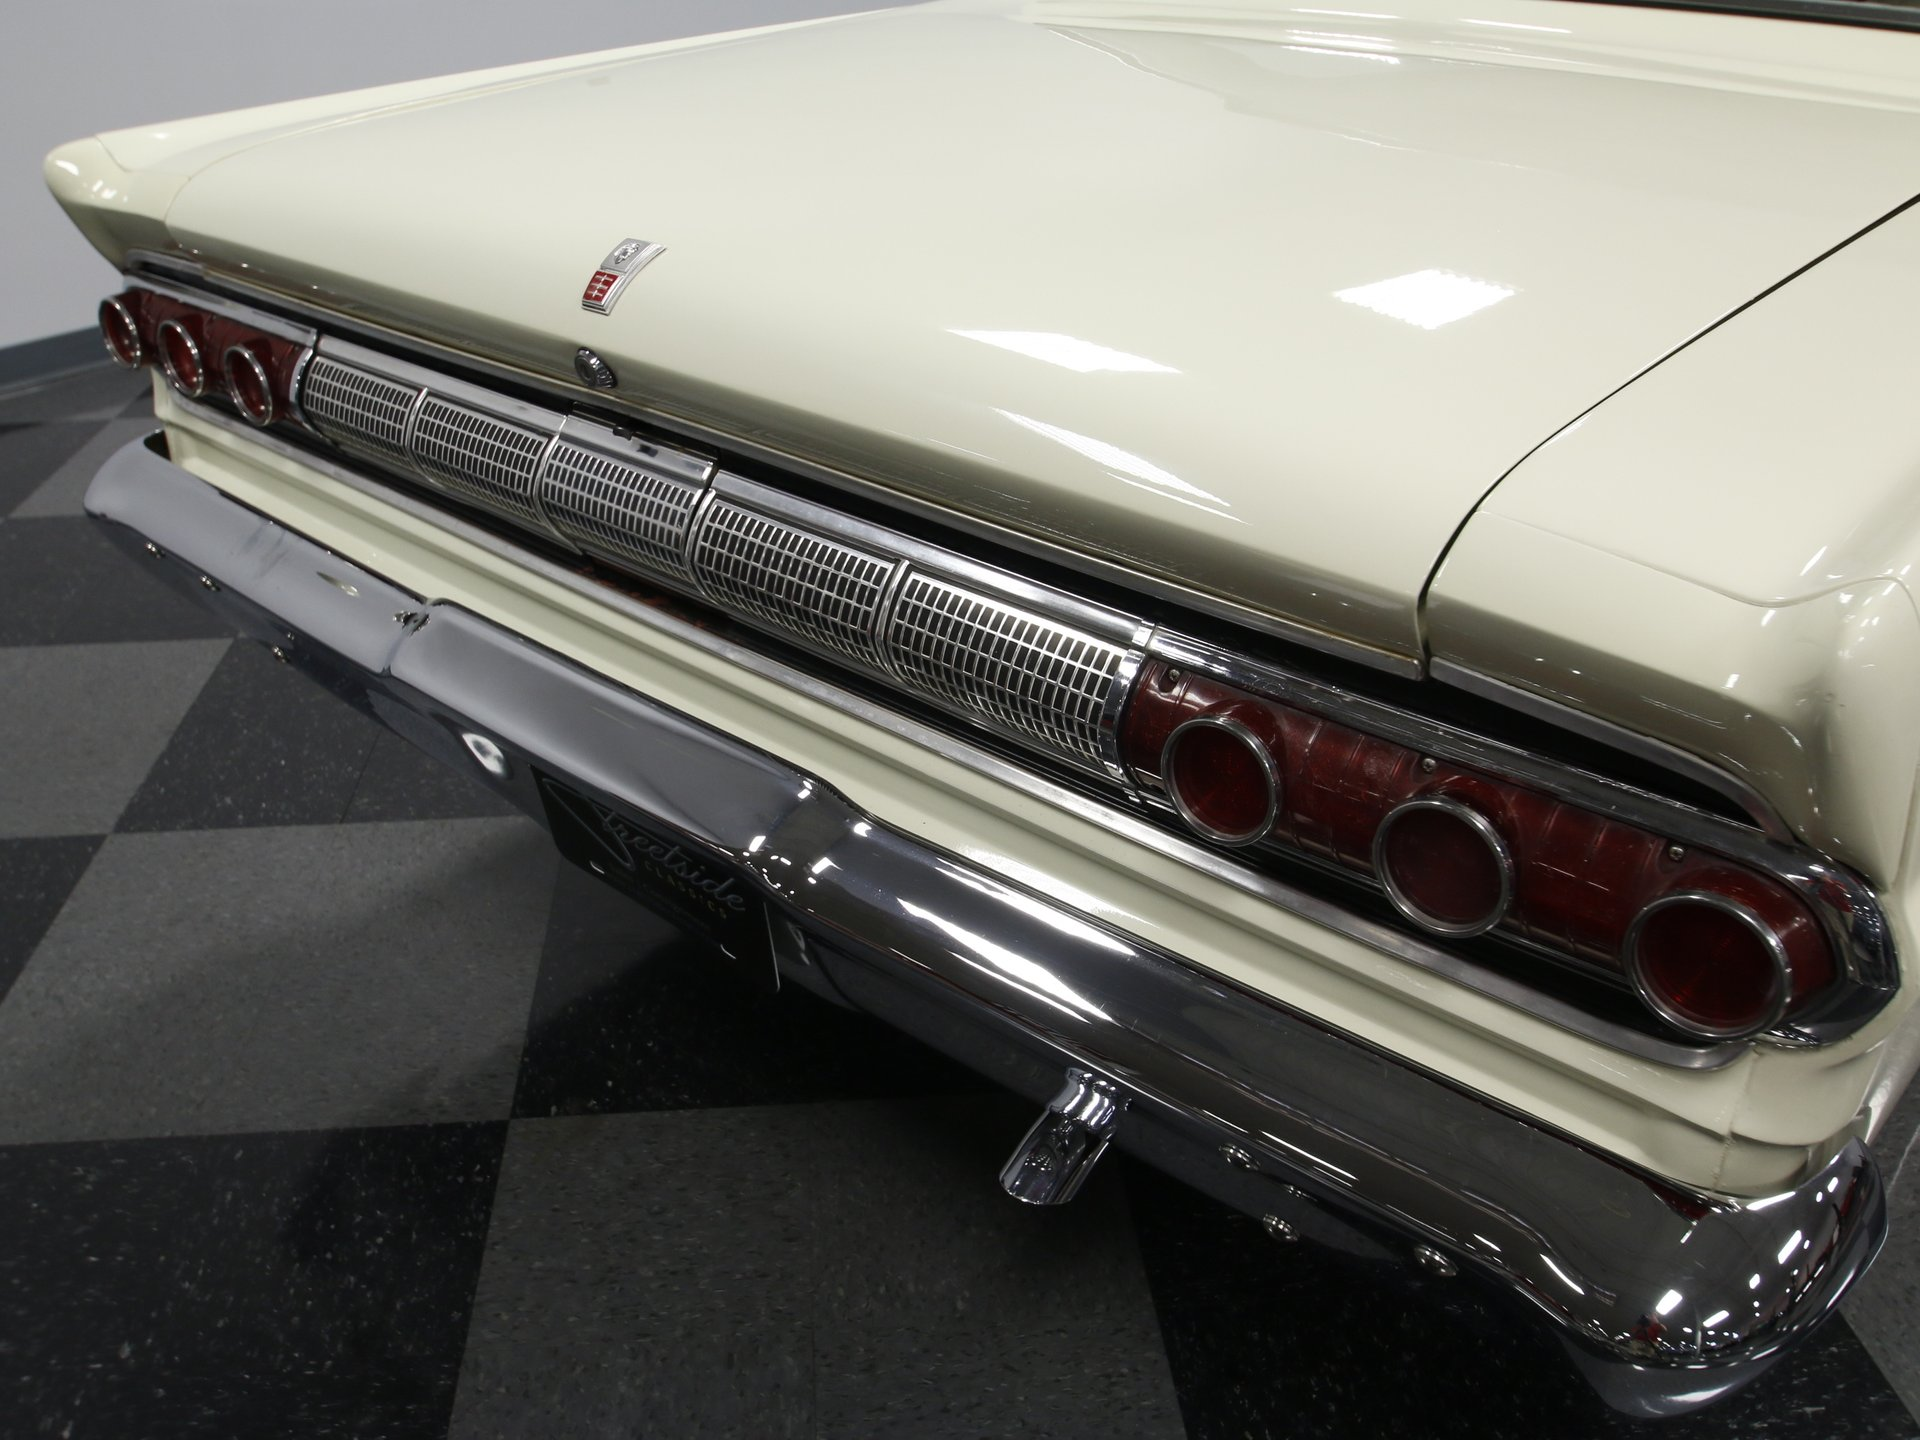 1964 Mercury Comet | Streetside Classics - The Nation's